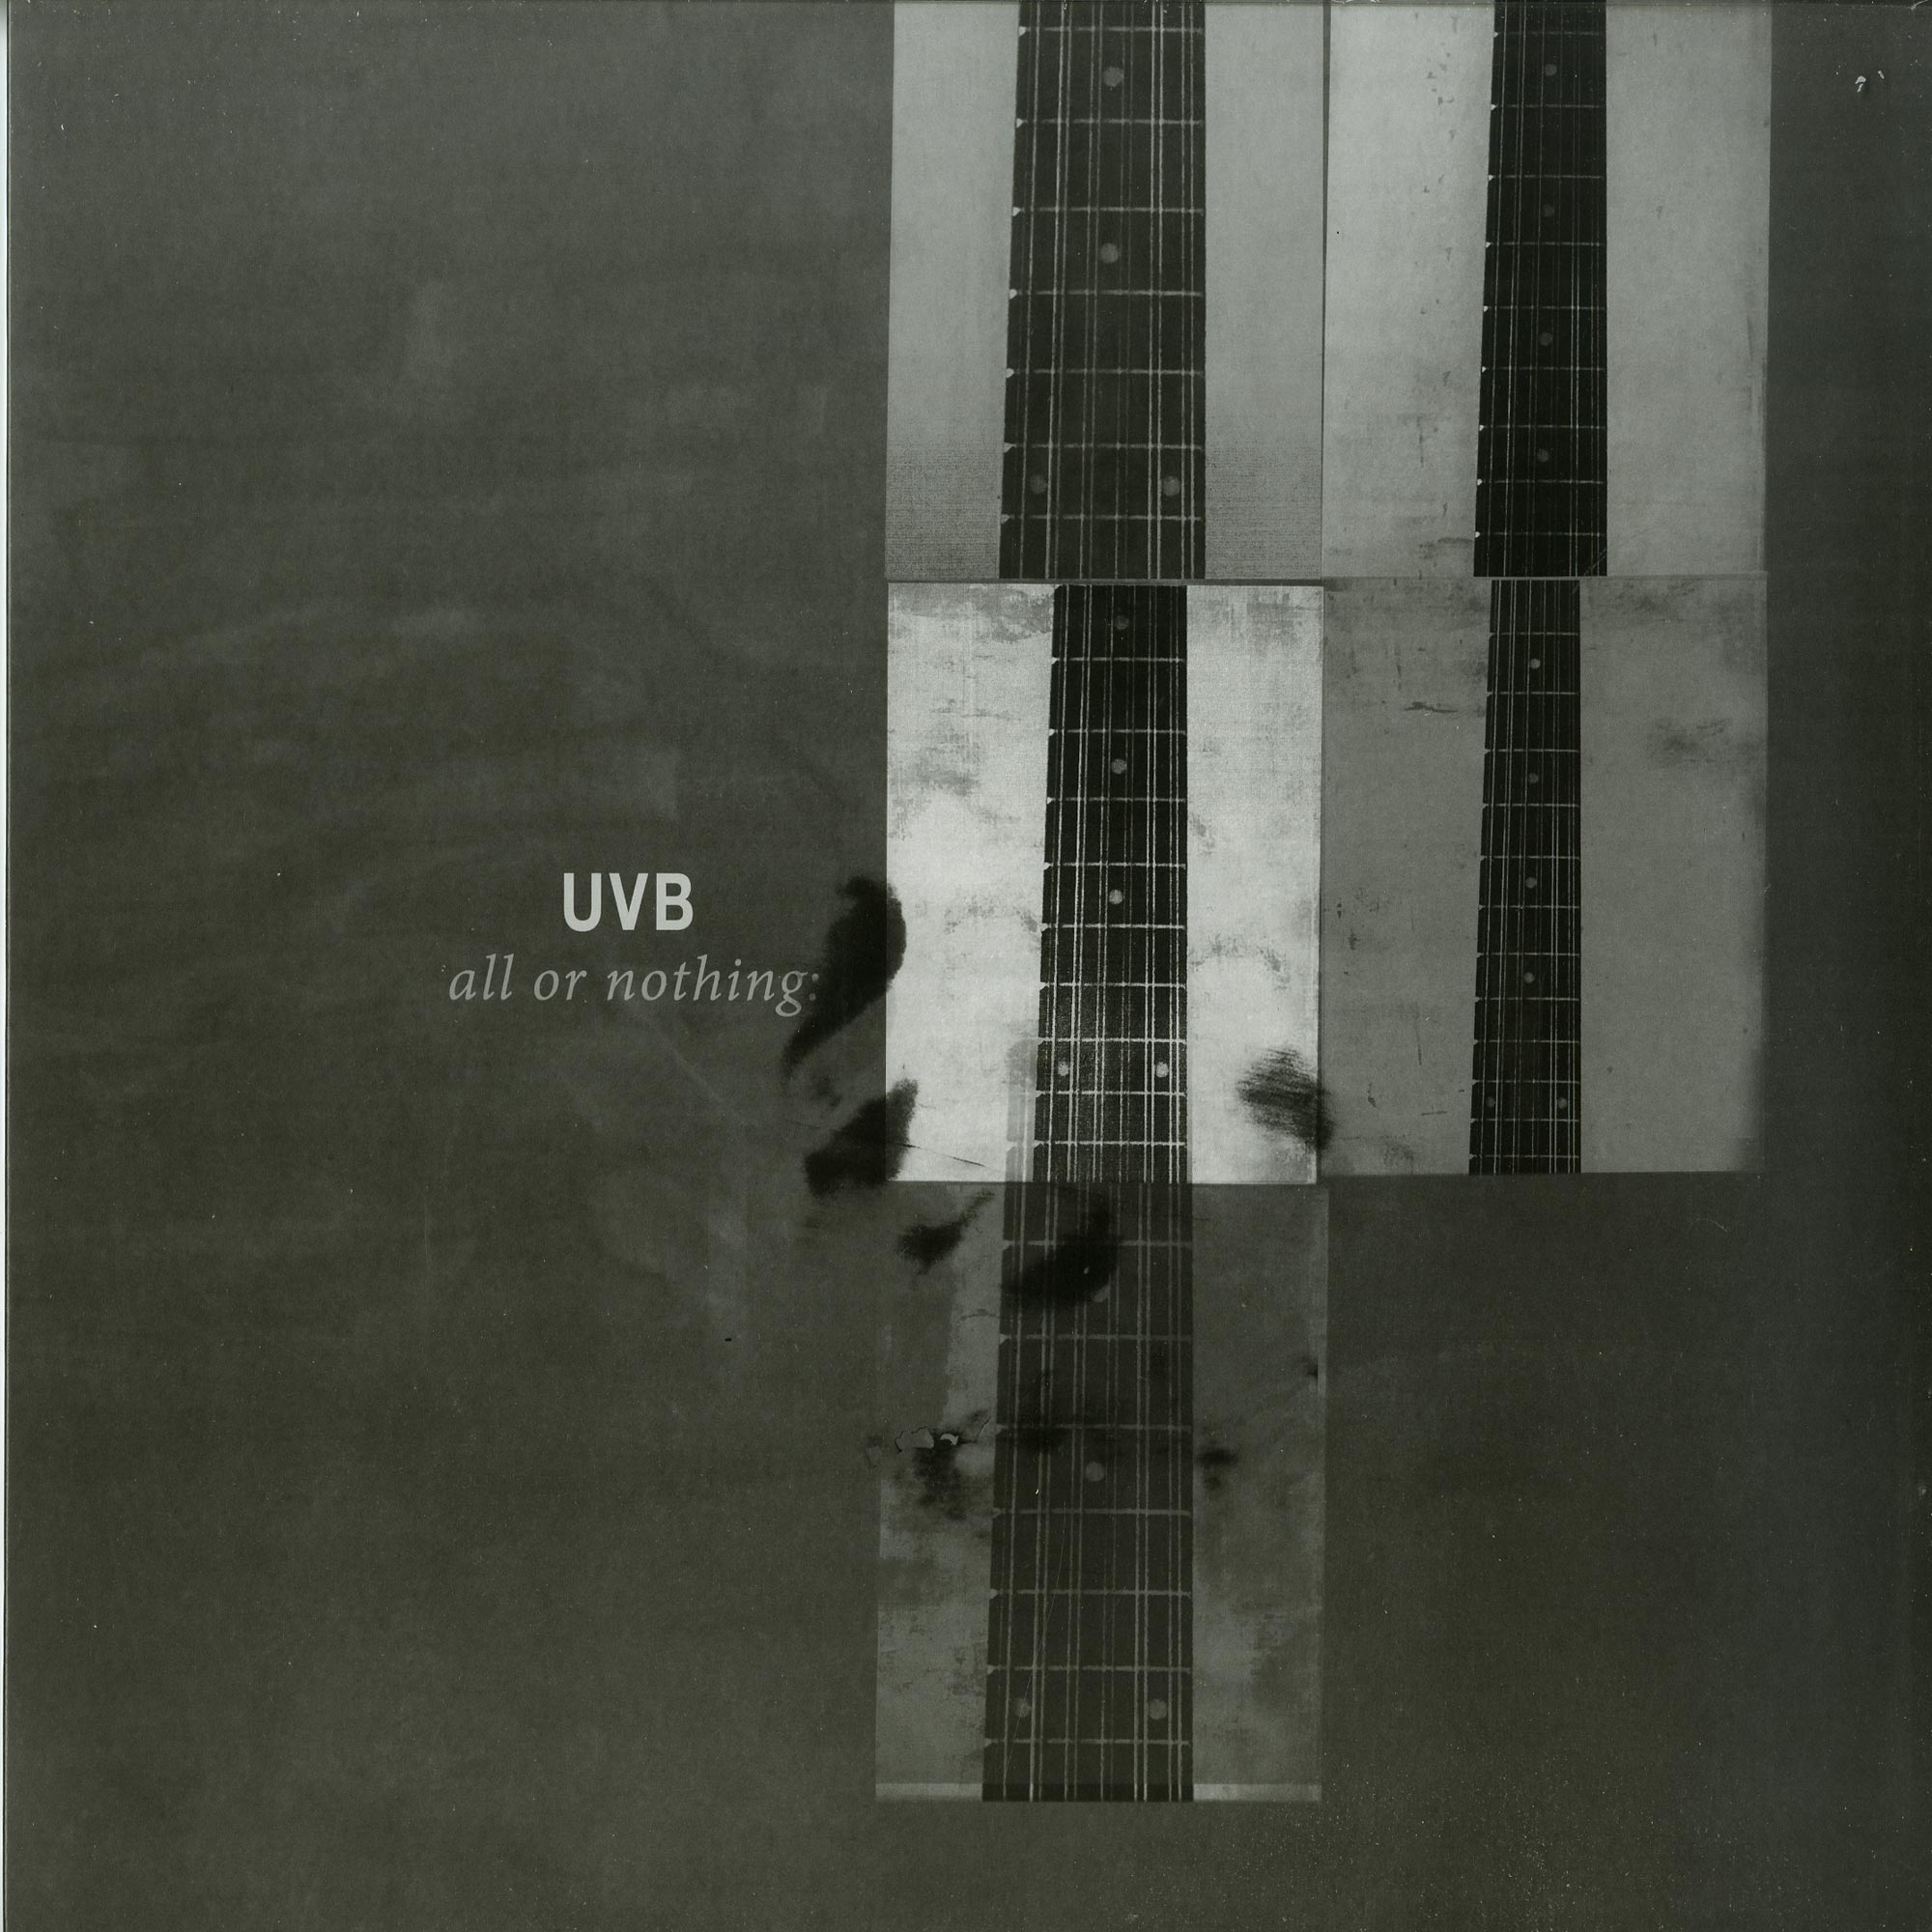 UVB - ALL OR NOTHING